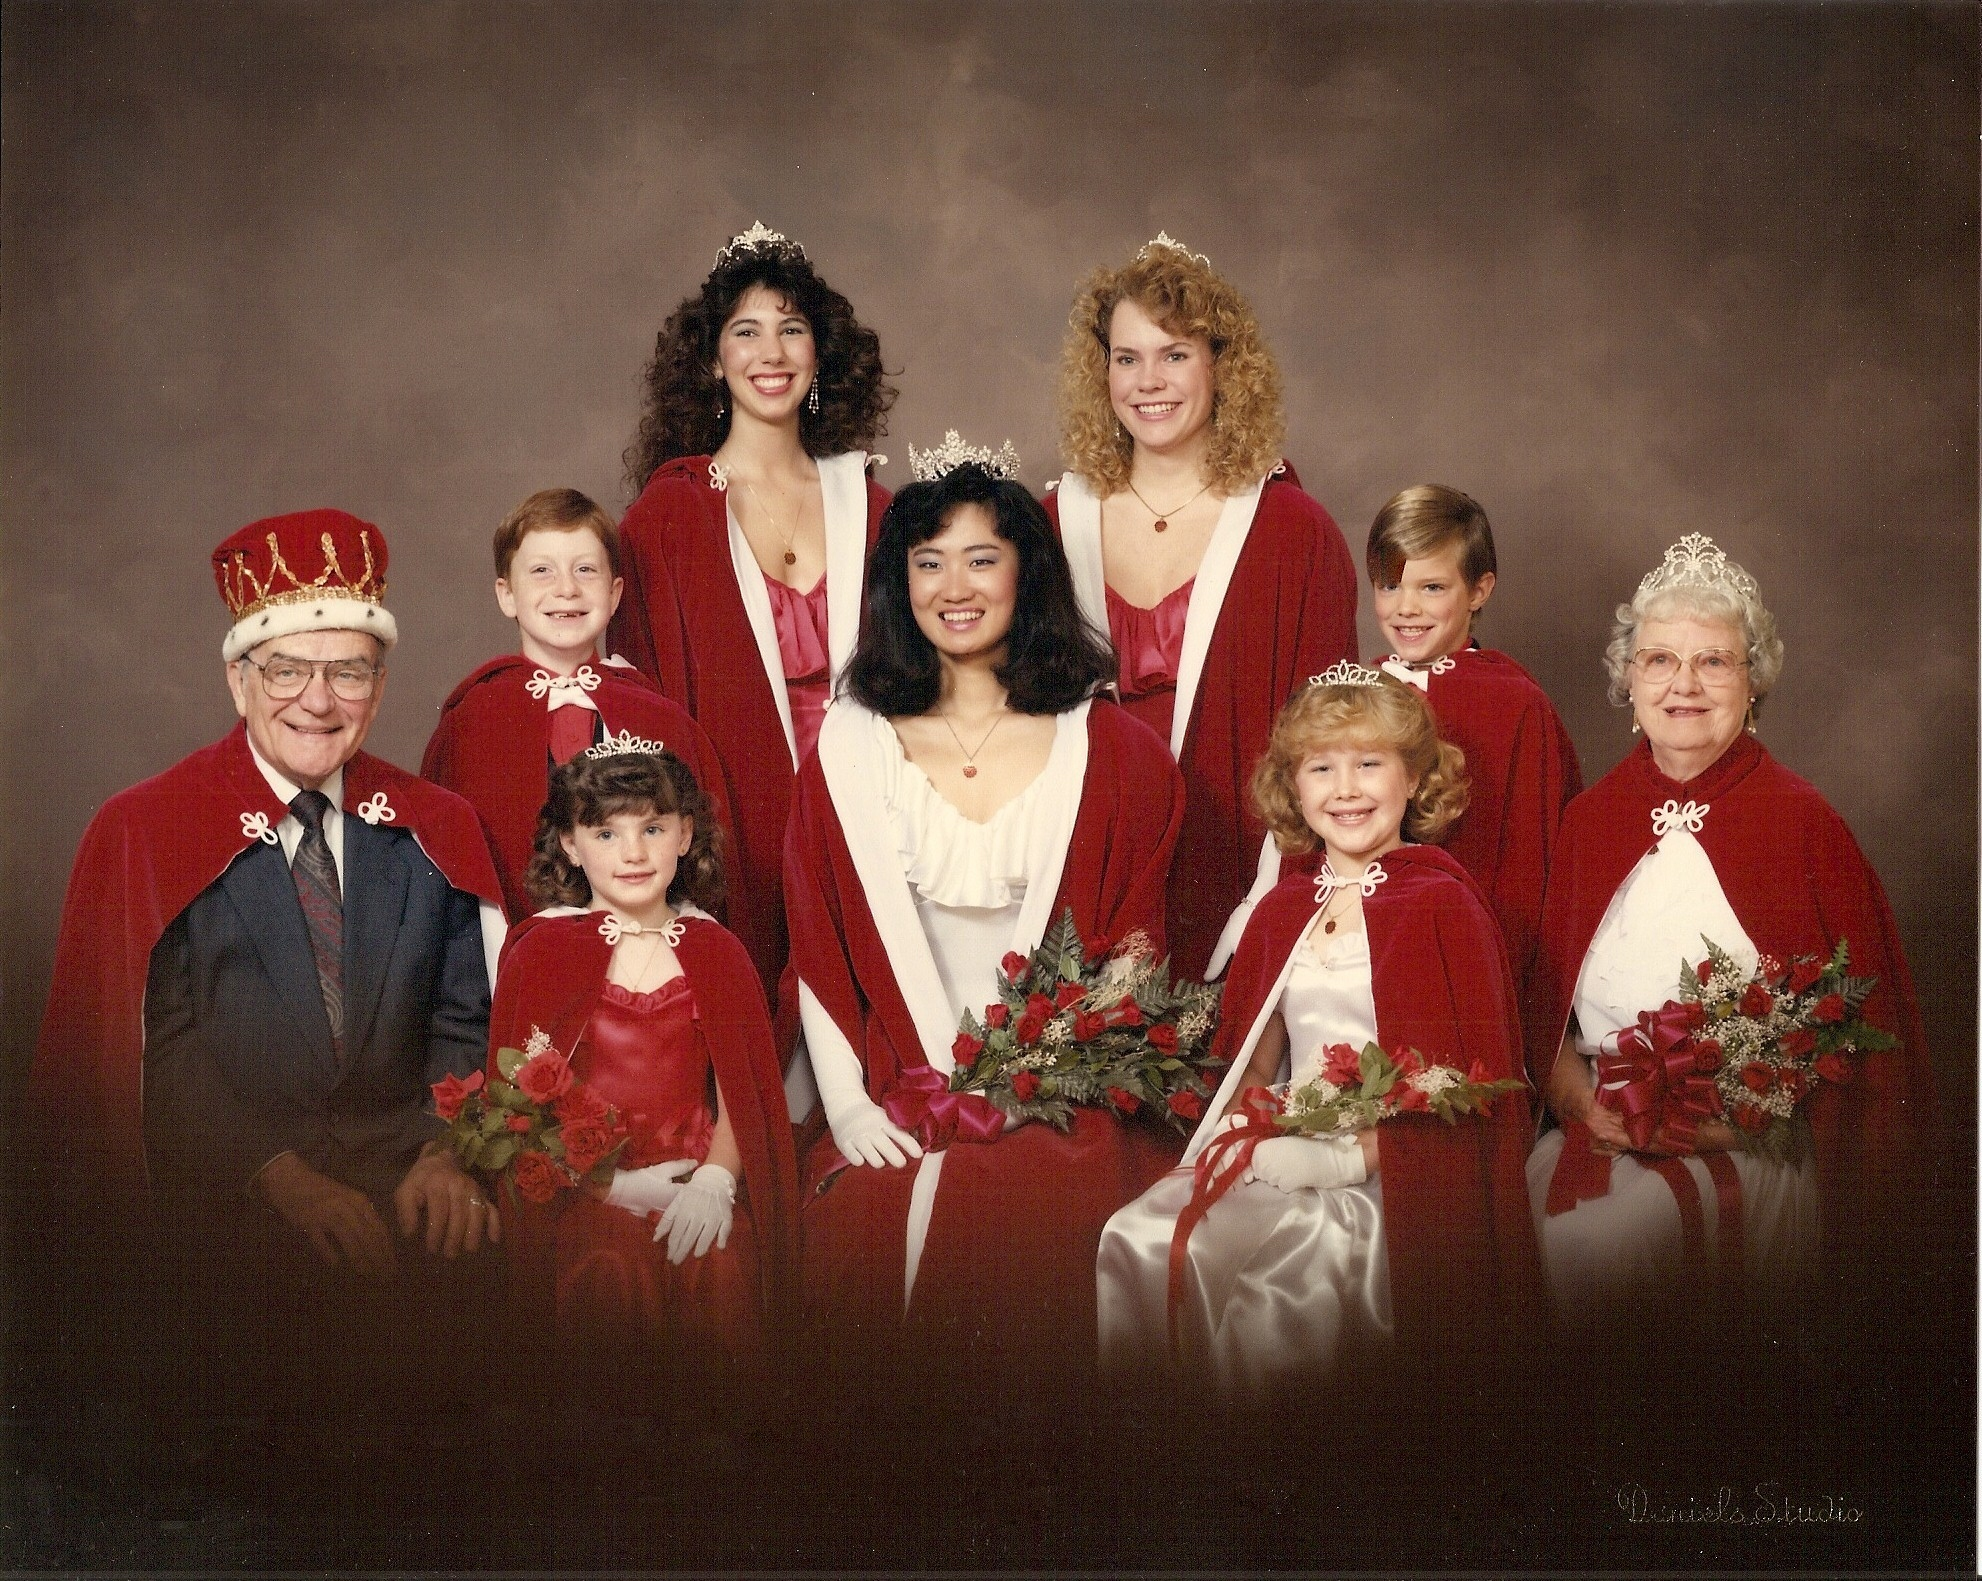 1988-1989 Royal Family photo